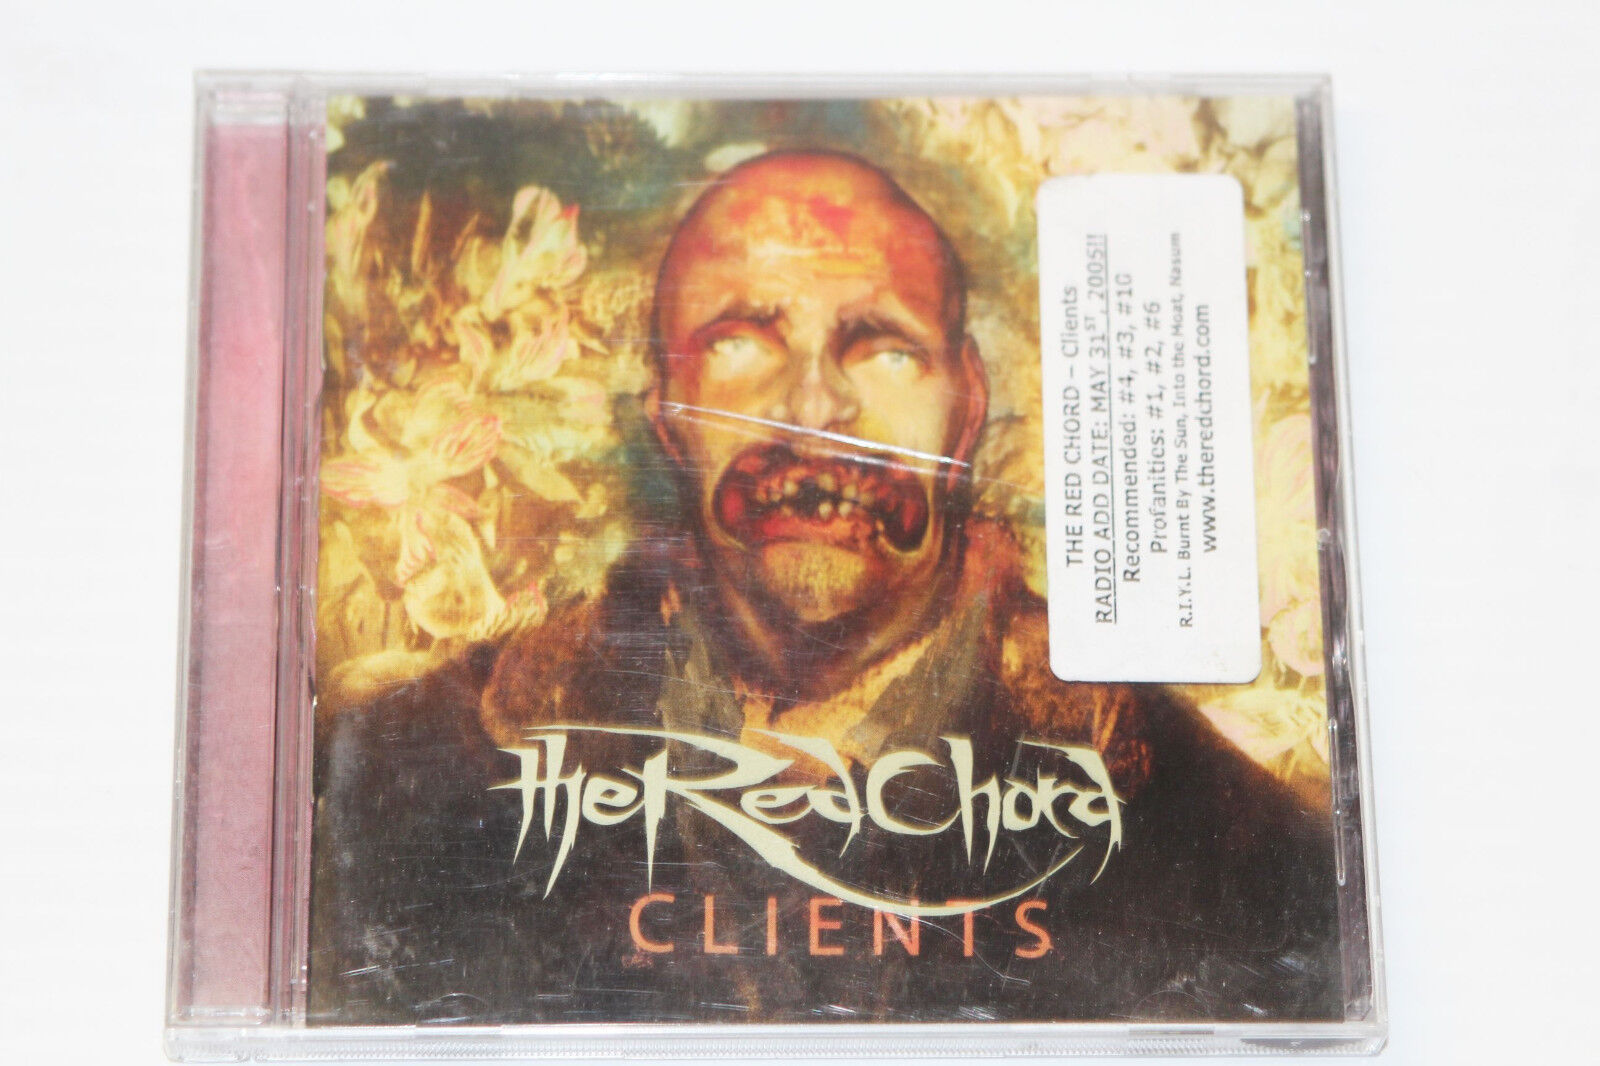 Clients by The Red Chord (Promo Music CD, May-2005, Metal Blade Records)